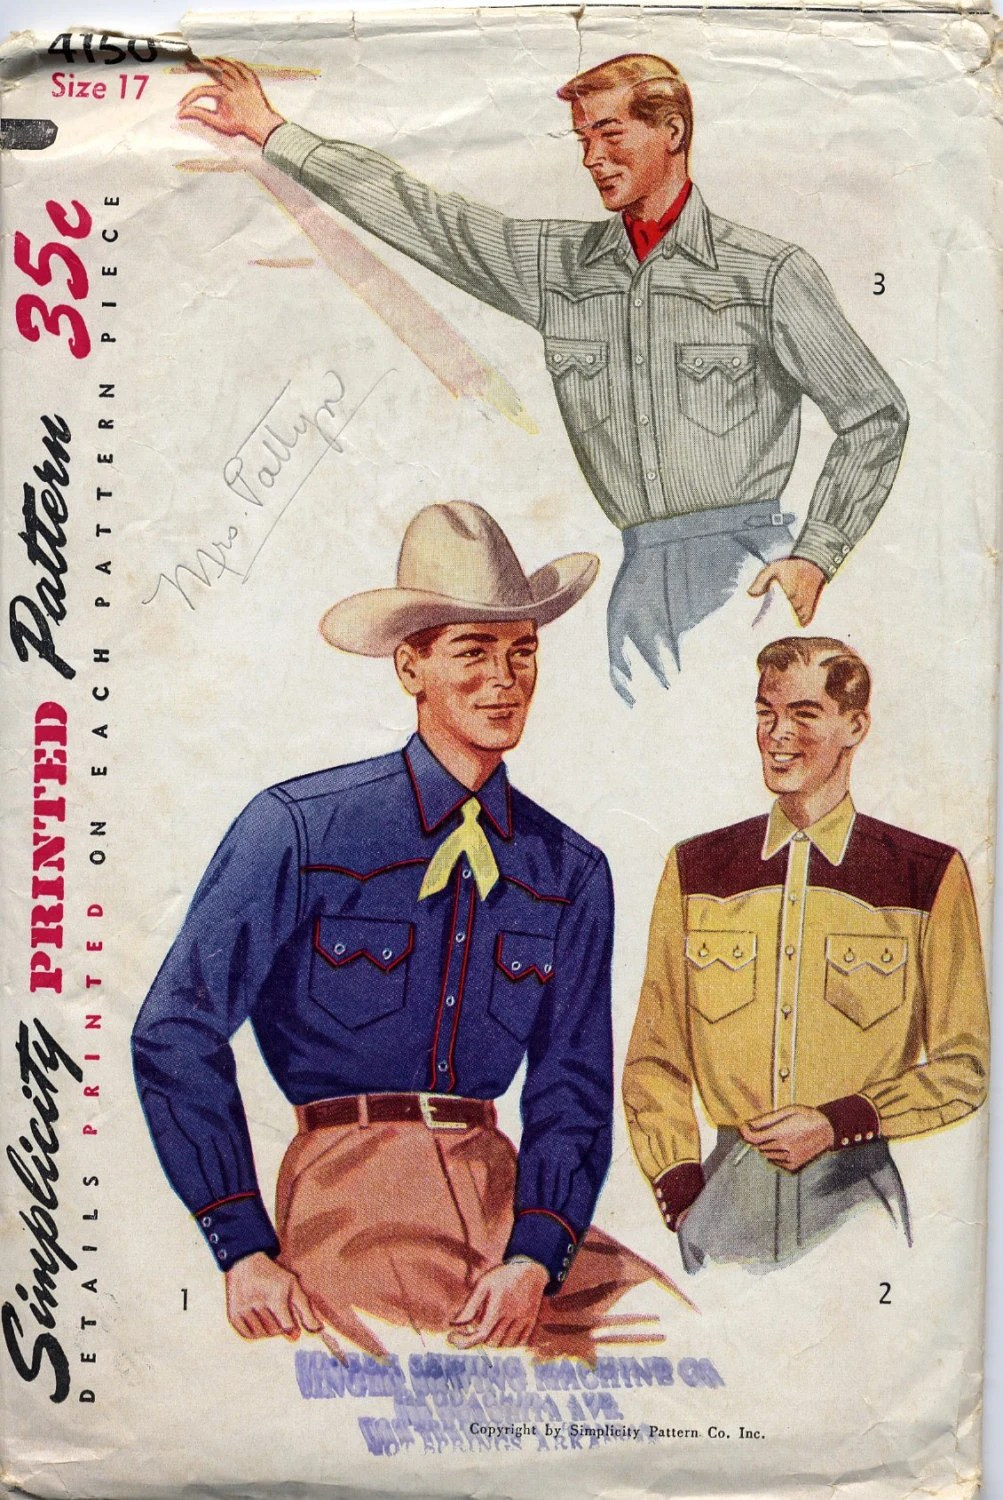 Retro Cowboy Embroidery Patterns